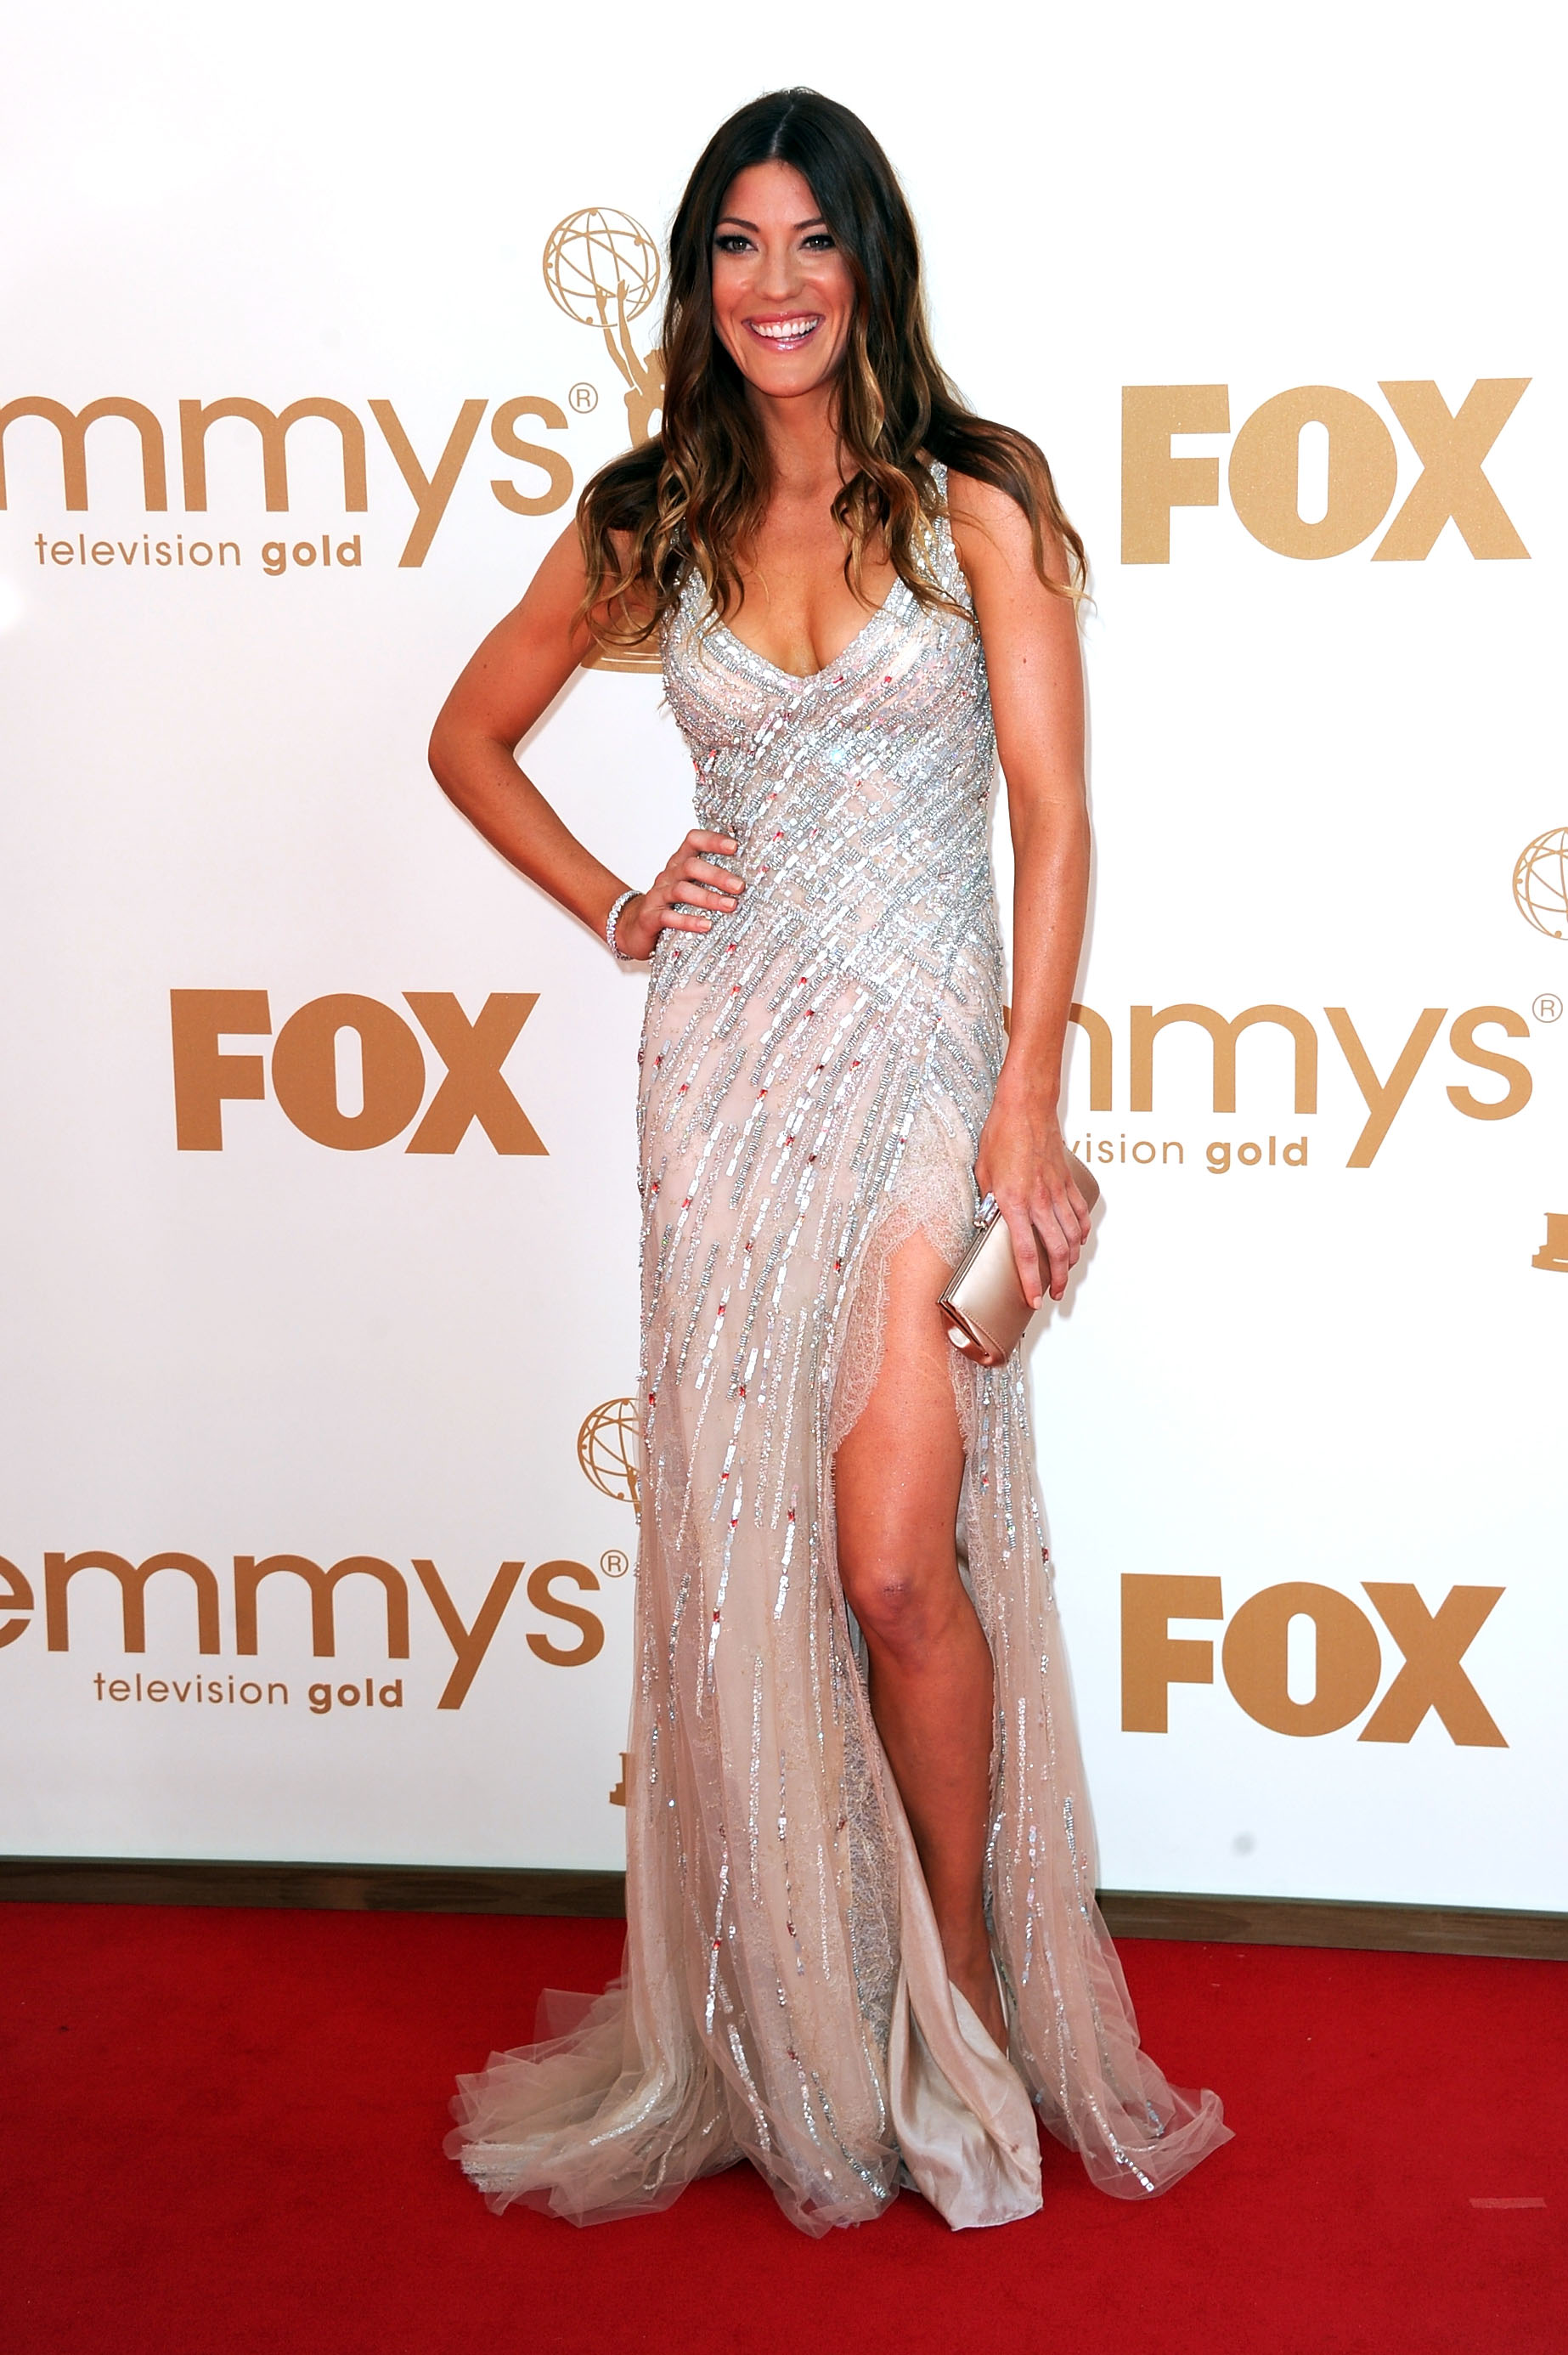 Actress Jennifer Carpenter arrives at the 63rd Annual Primetime Emmy Awards held at Nokia Theatre L.A. LIVE on September 18, 2011, in Los Angeles, California. (Photo by Kevin Winter/Getty Images)